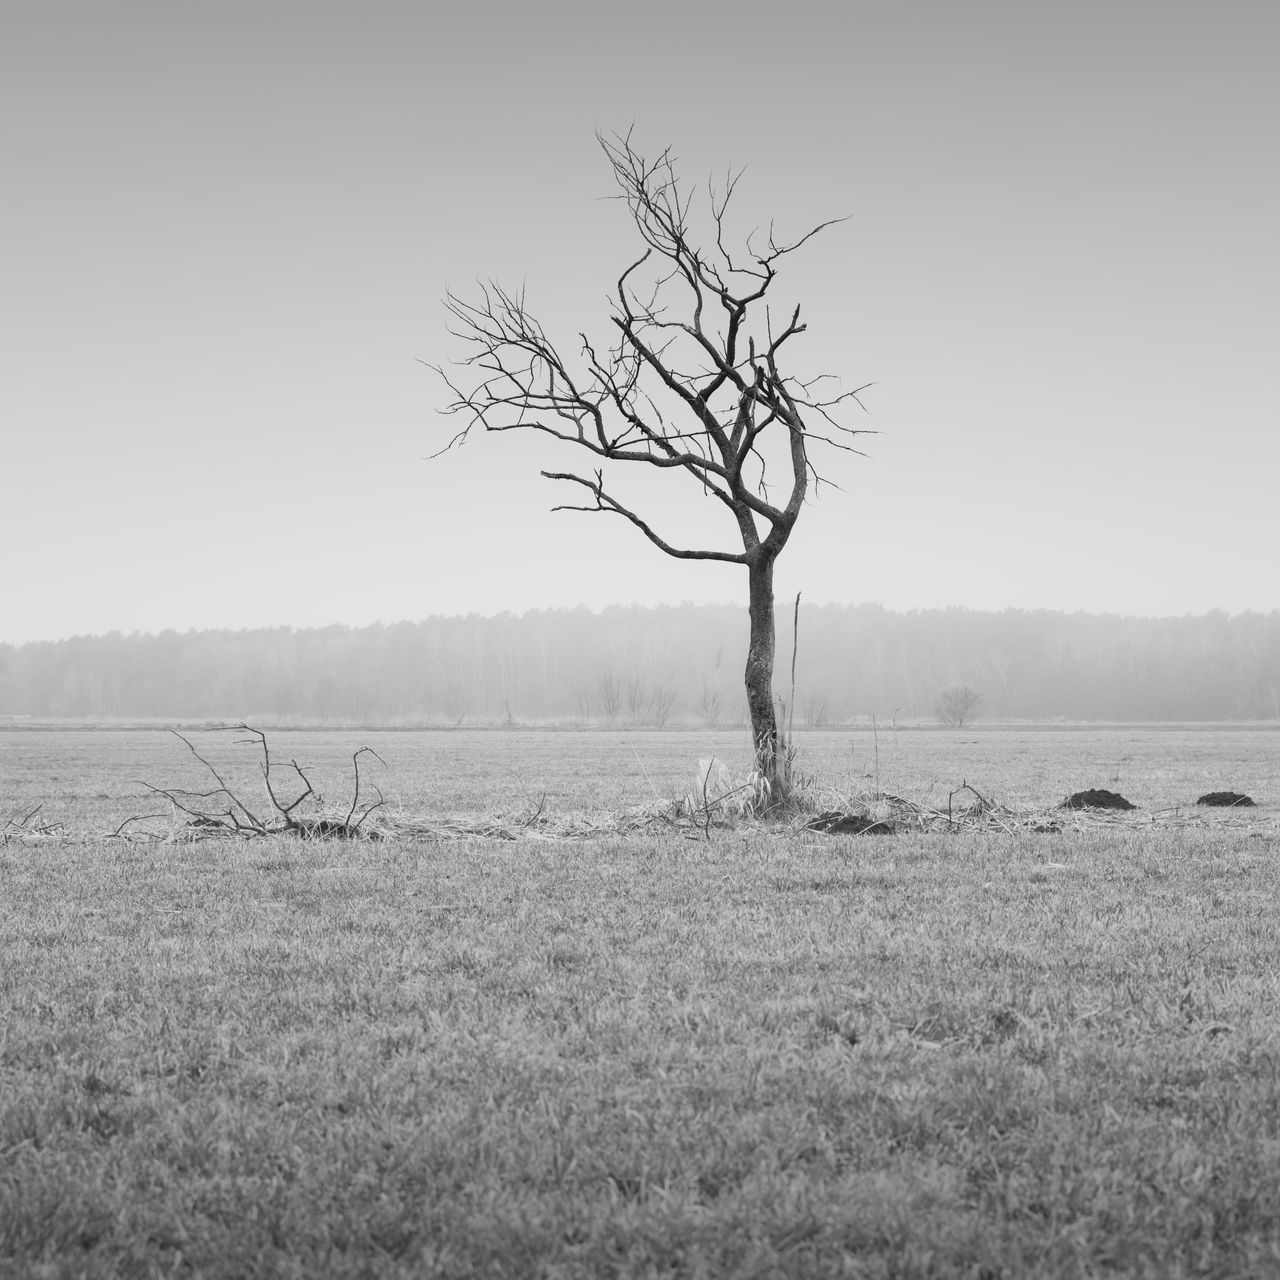 skeleton tree on a barren field in brandenburg germany Agriculture Bare Tree Barren Tree Beauty In Nature Black And White Branch Brandenburg Clear Sky Day Germany Havelland Landscape Landscape_photography Lone Lone Tree Monochrome Nature No People Outdoors Philipp Dase Sky Tranquil Scene Tranquility Tree Winter Landscape